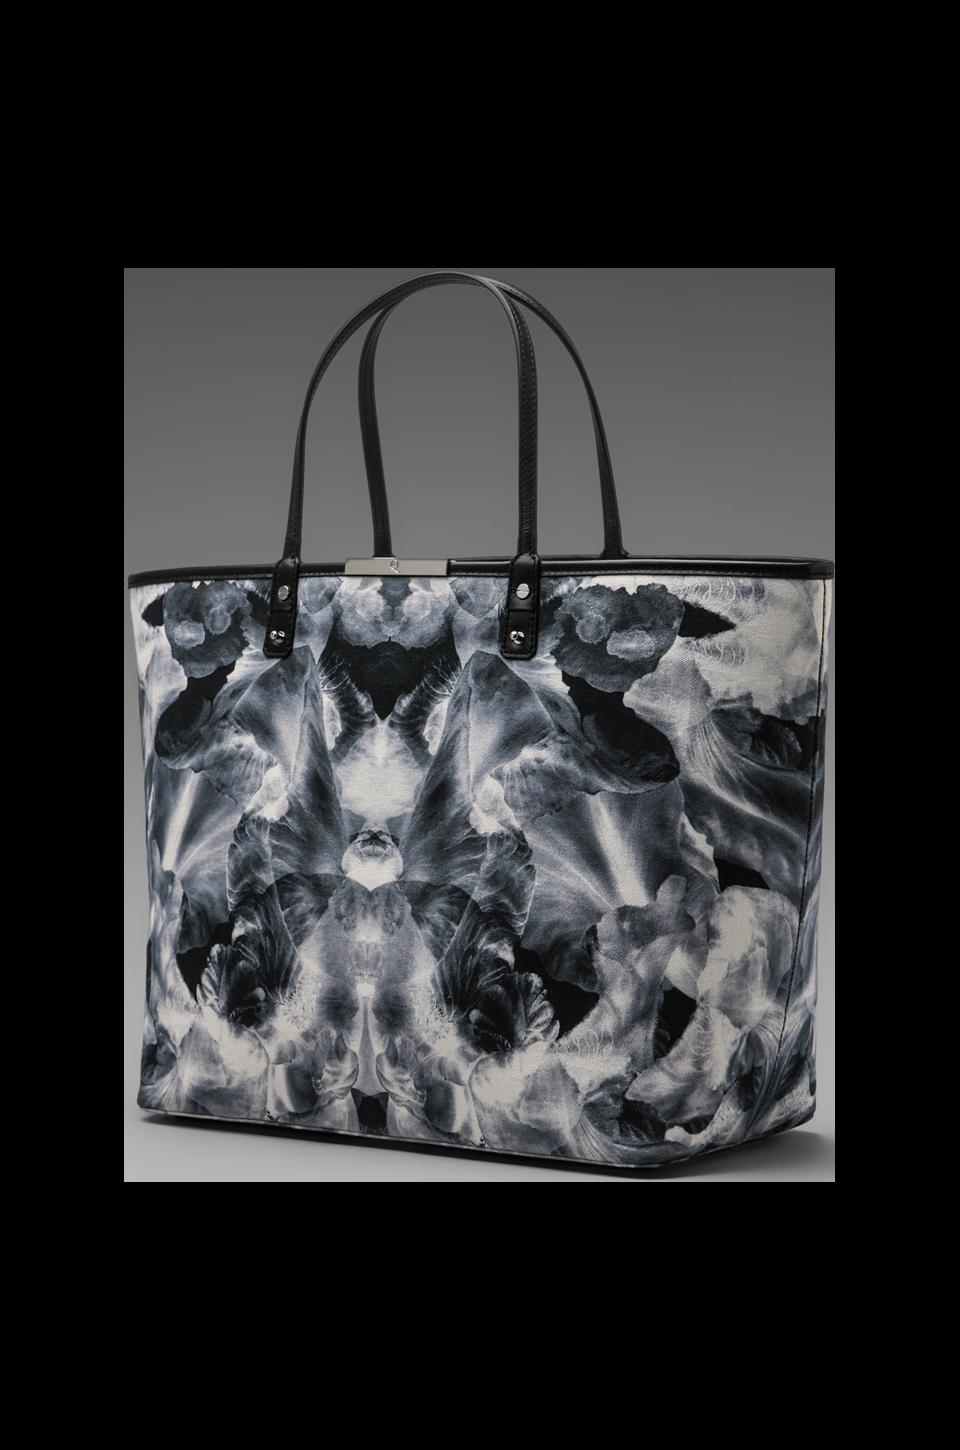 McQ Alexander McQueen Large Tote in Black/White